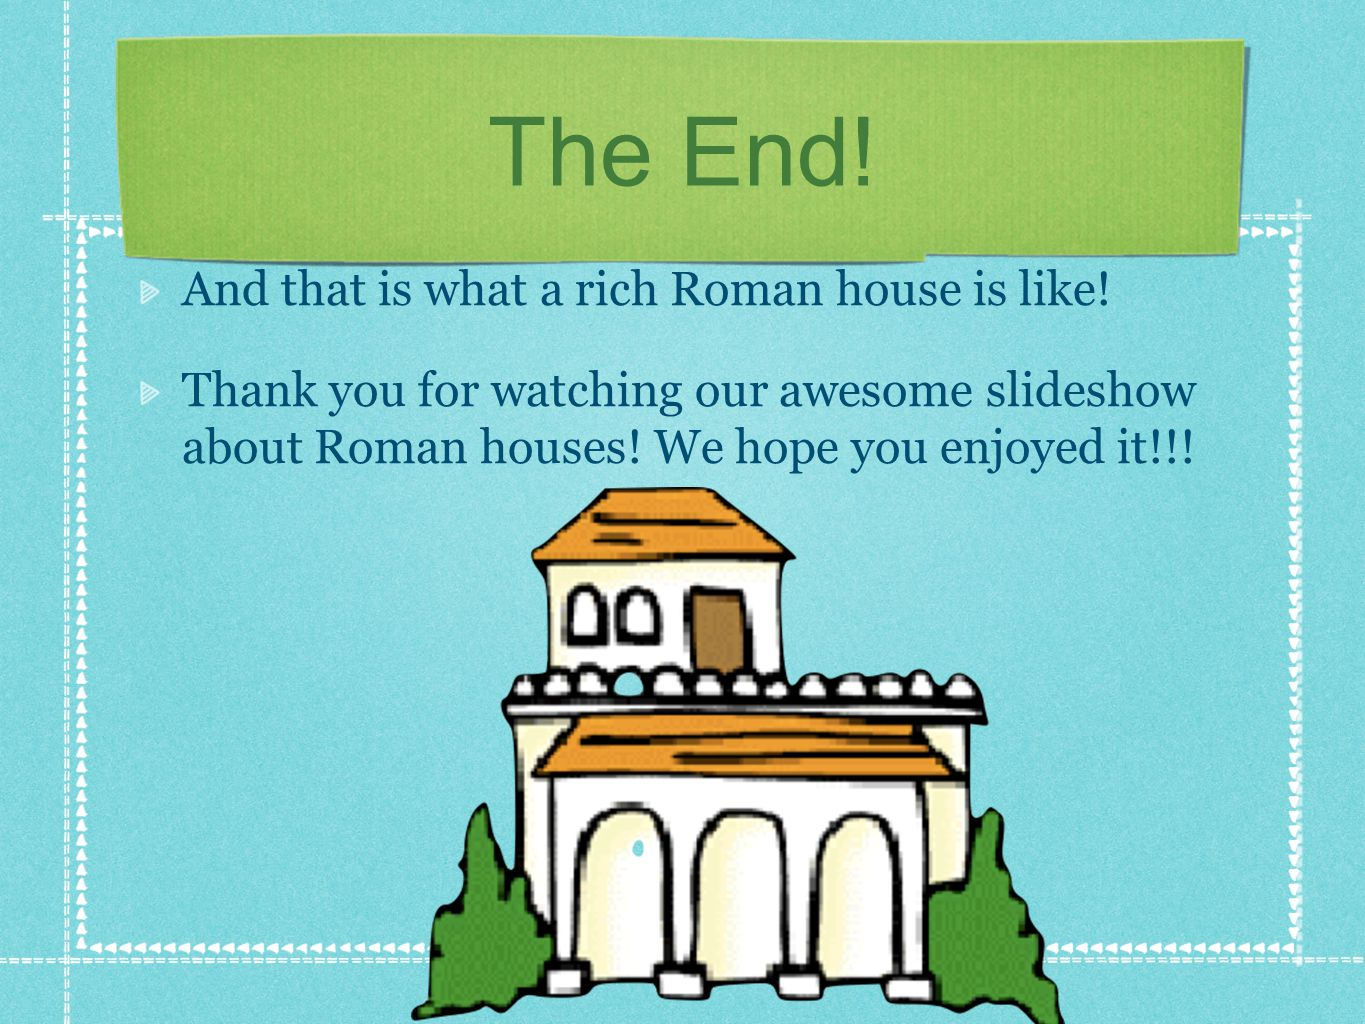 The End! And that is what a rich Roman house is like!